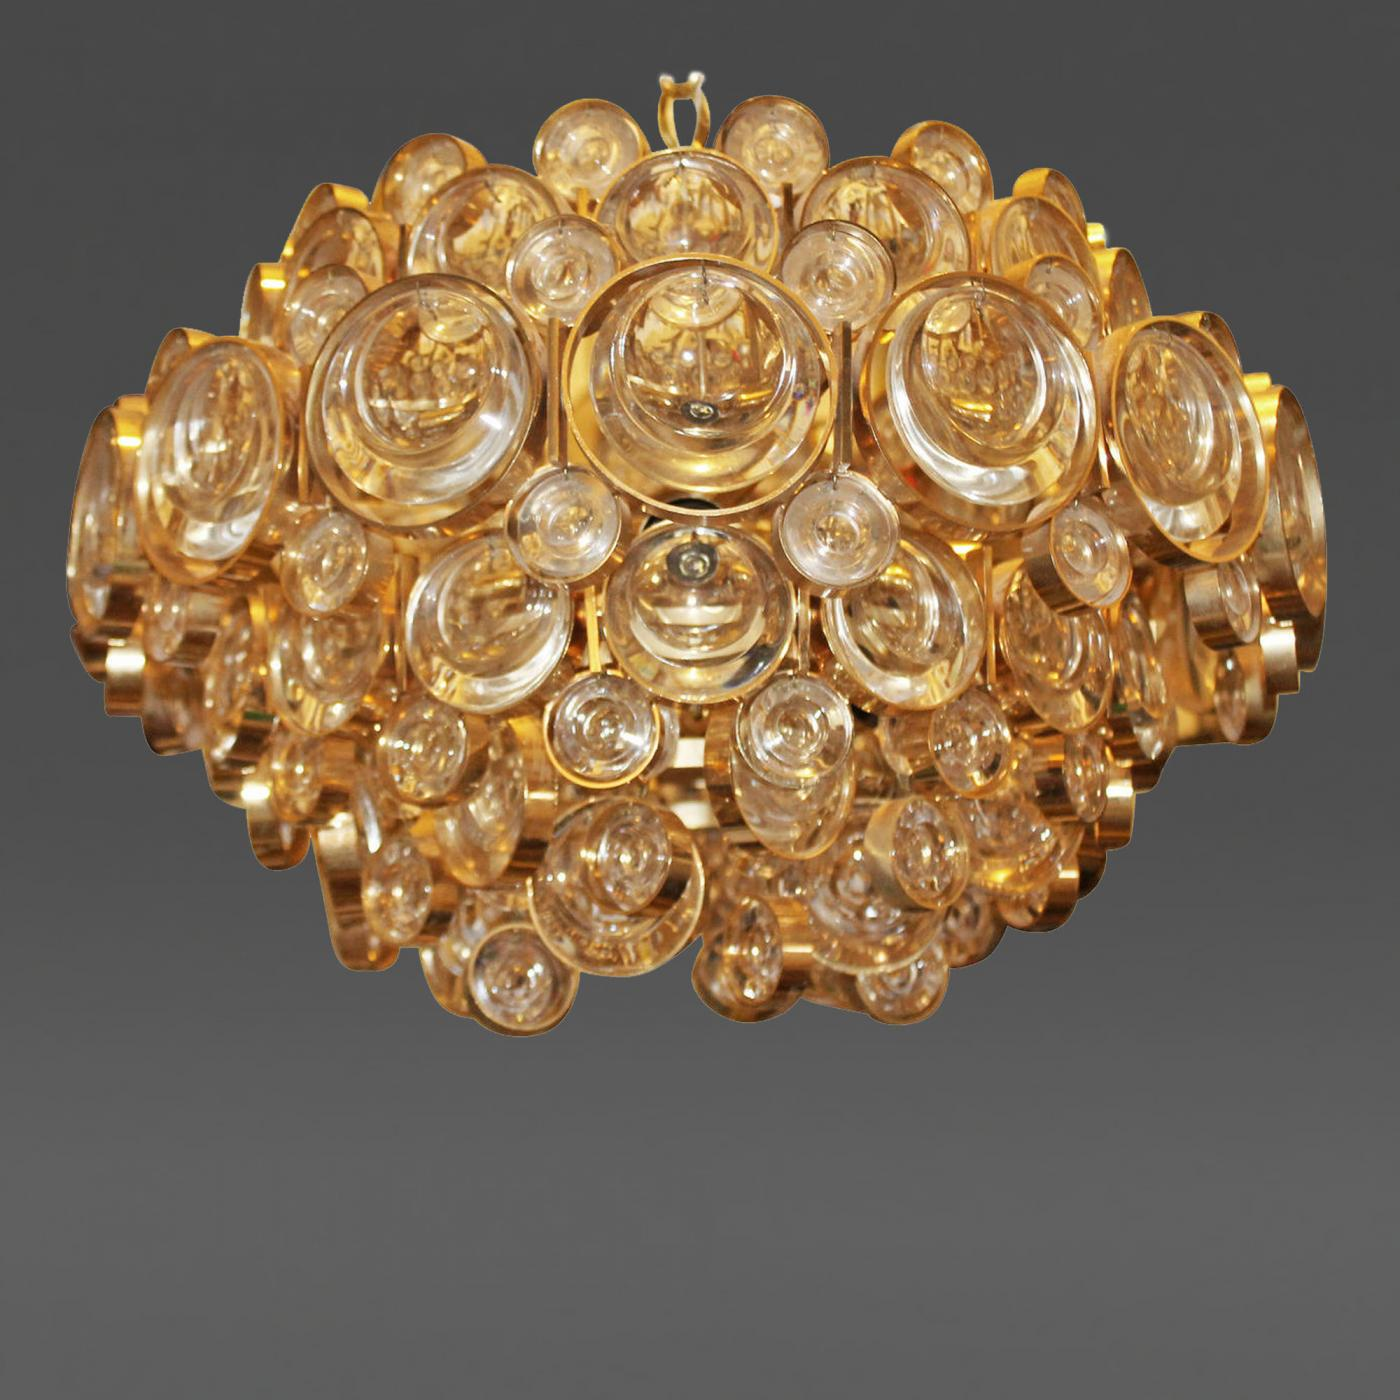 Palwa gracious gold plated chandelier by palwa germany 1970s listings furniture lighting chandeliers and pendants palwa gracious gold plated mozeypictures Image collections